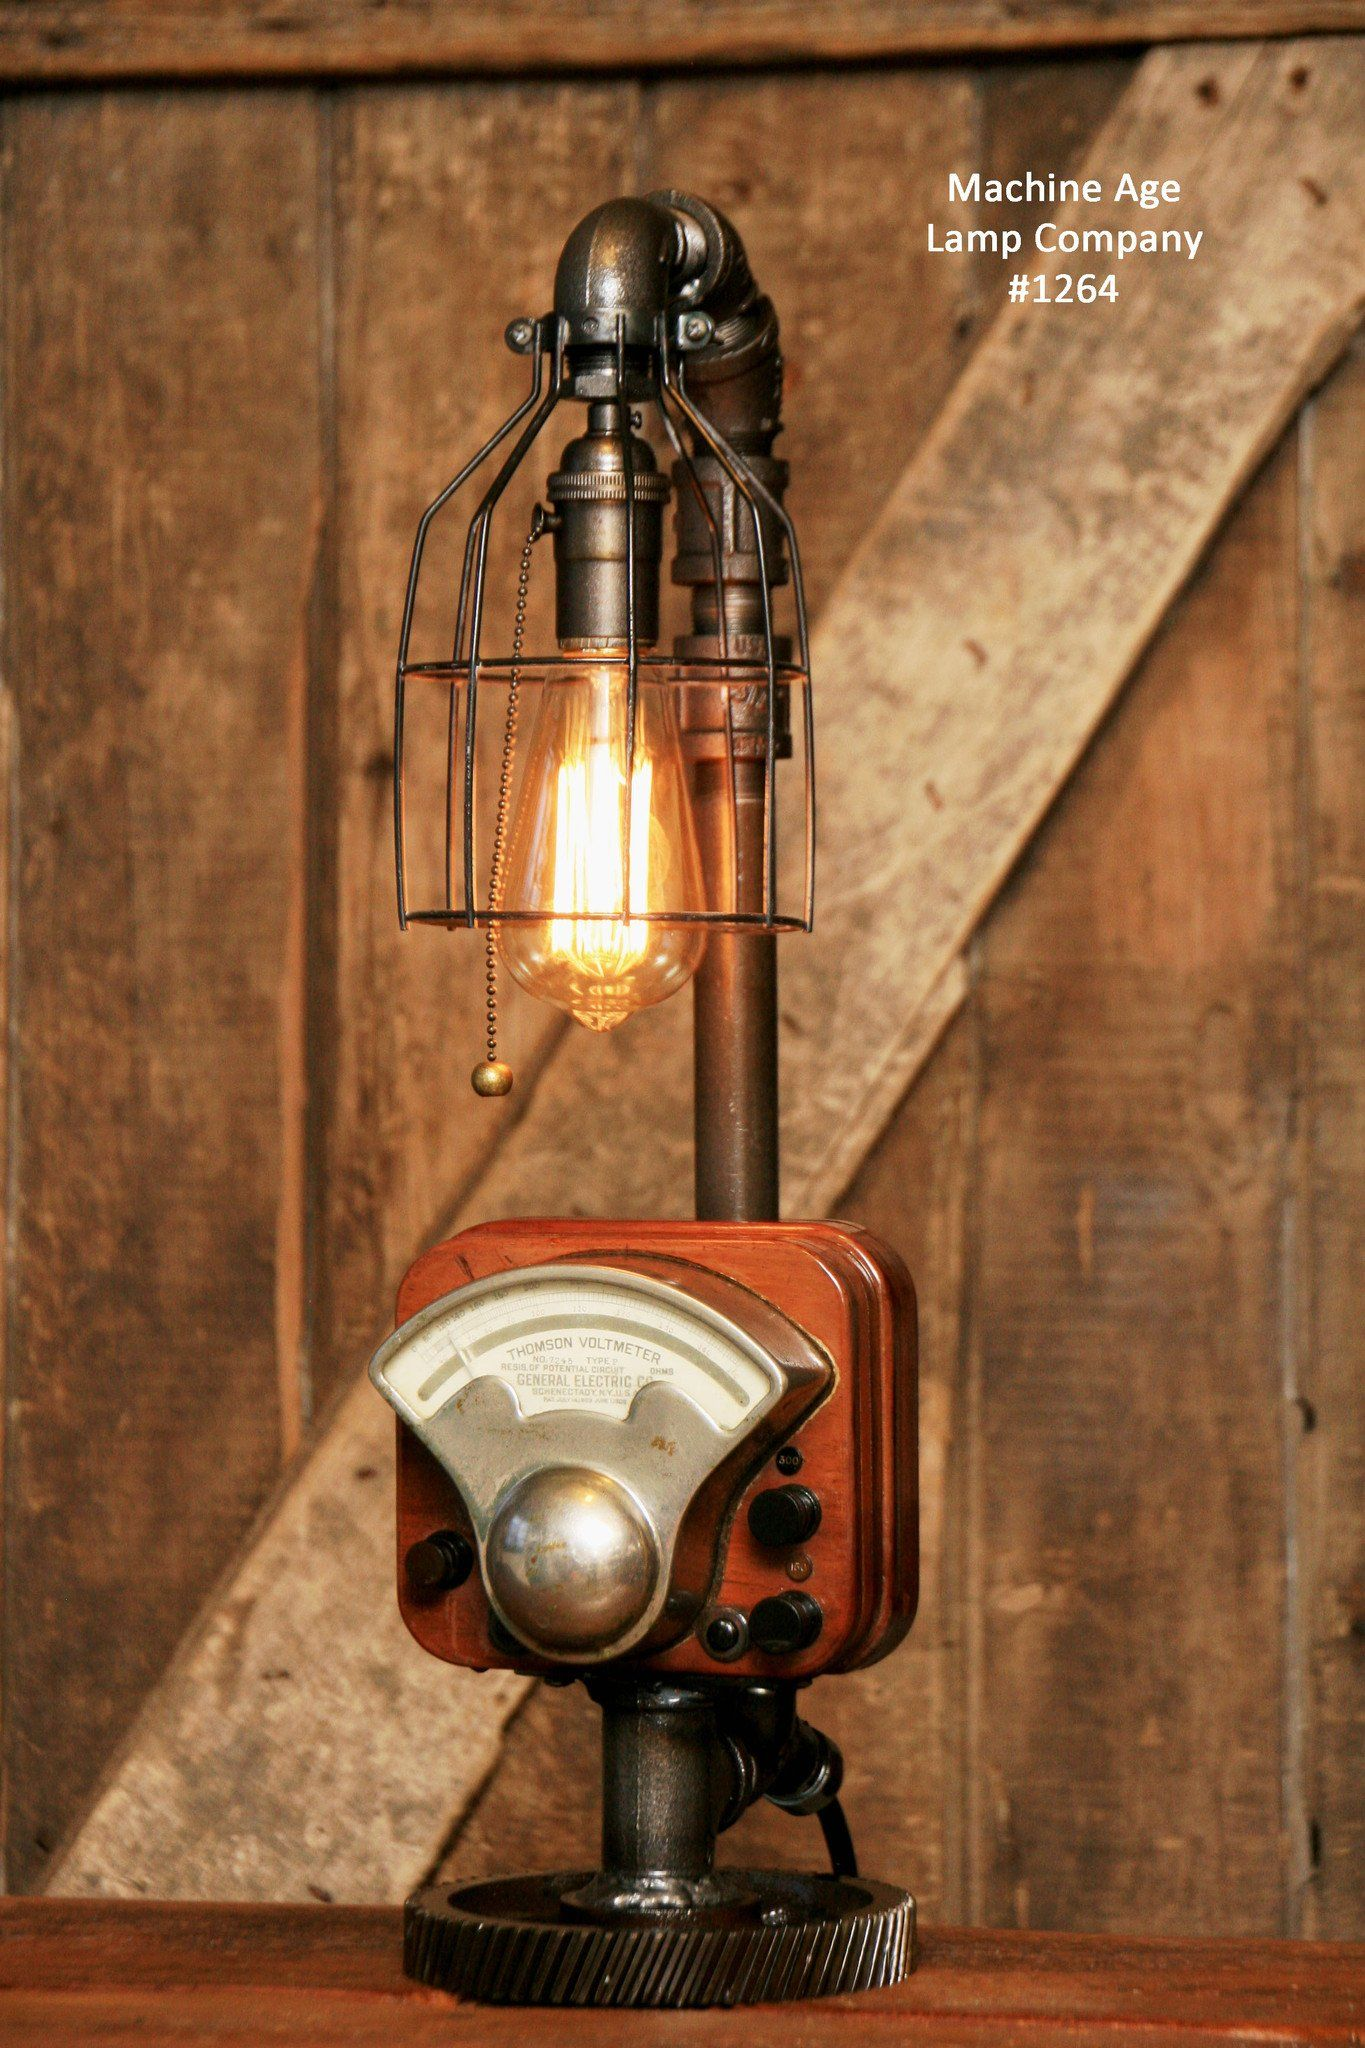 Steampunk Industrial Antique Electrial Meter Gear Lamp #1264 Sold